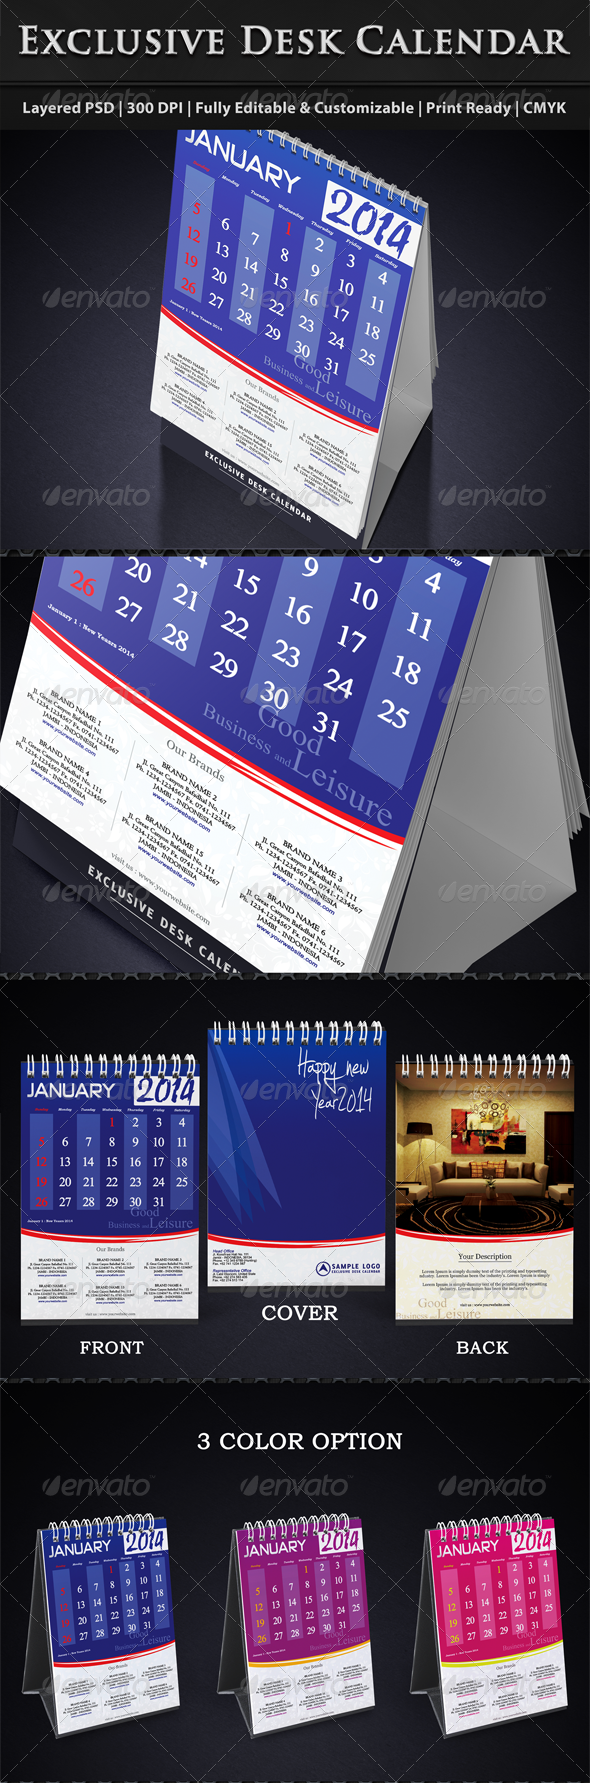 GraphicRiver Exclusive Desk Calendar Template 2014 5828660